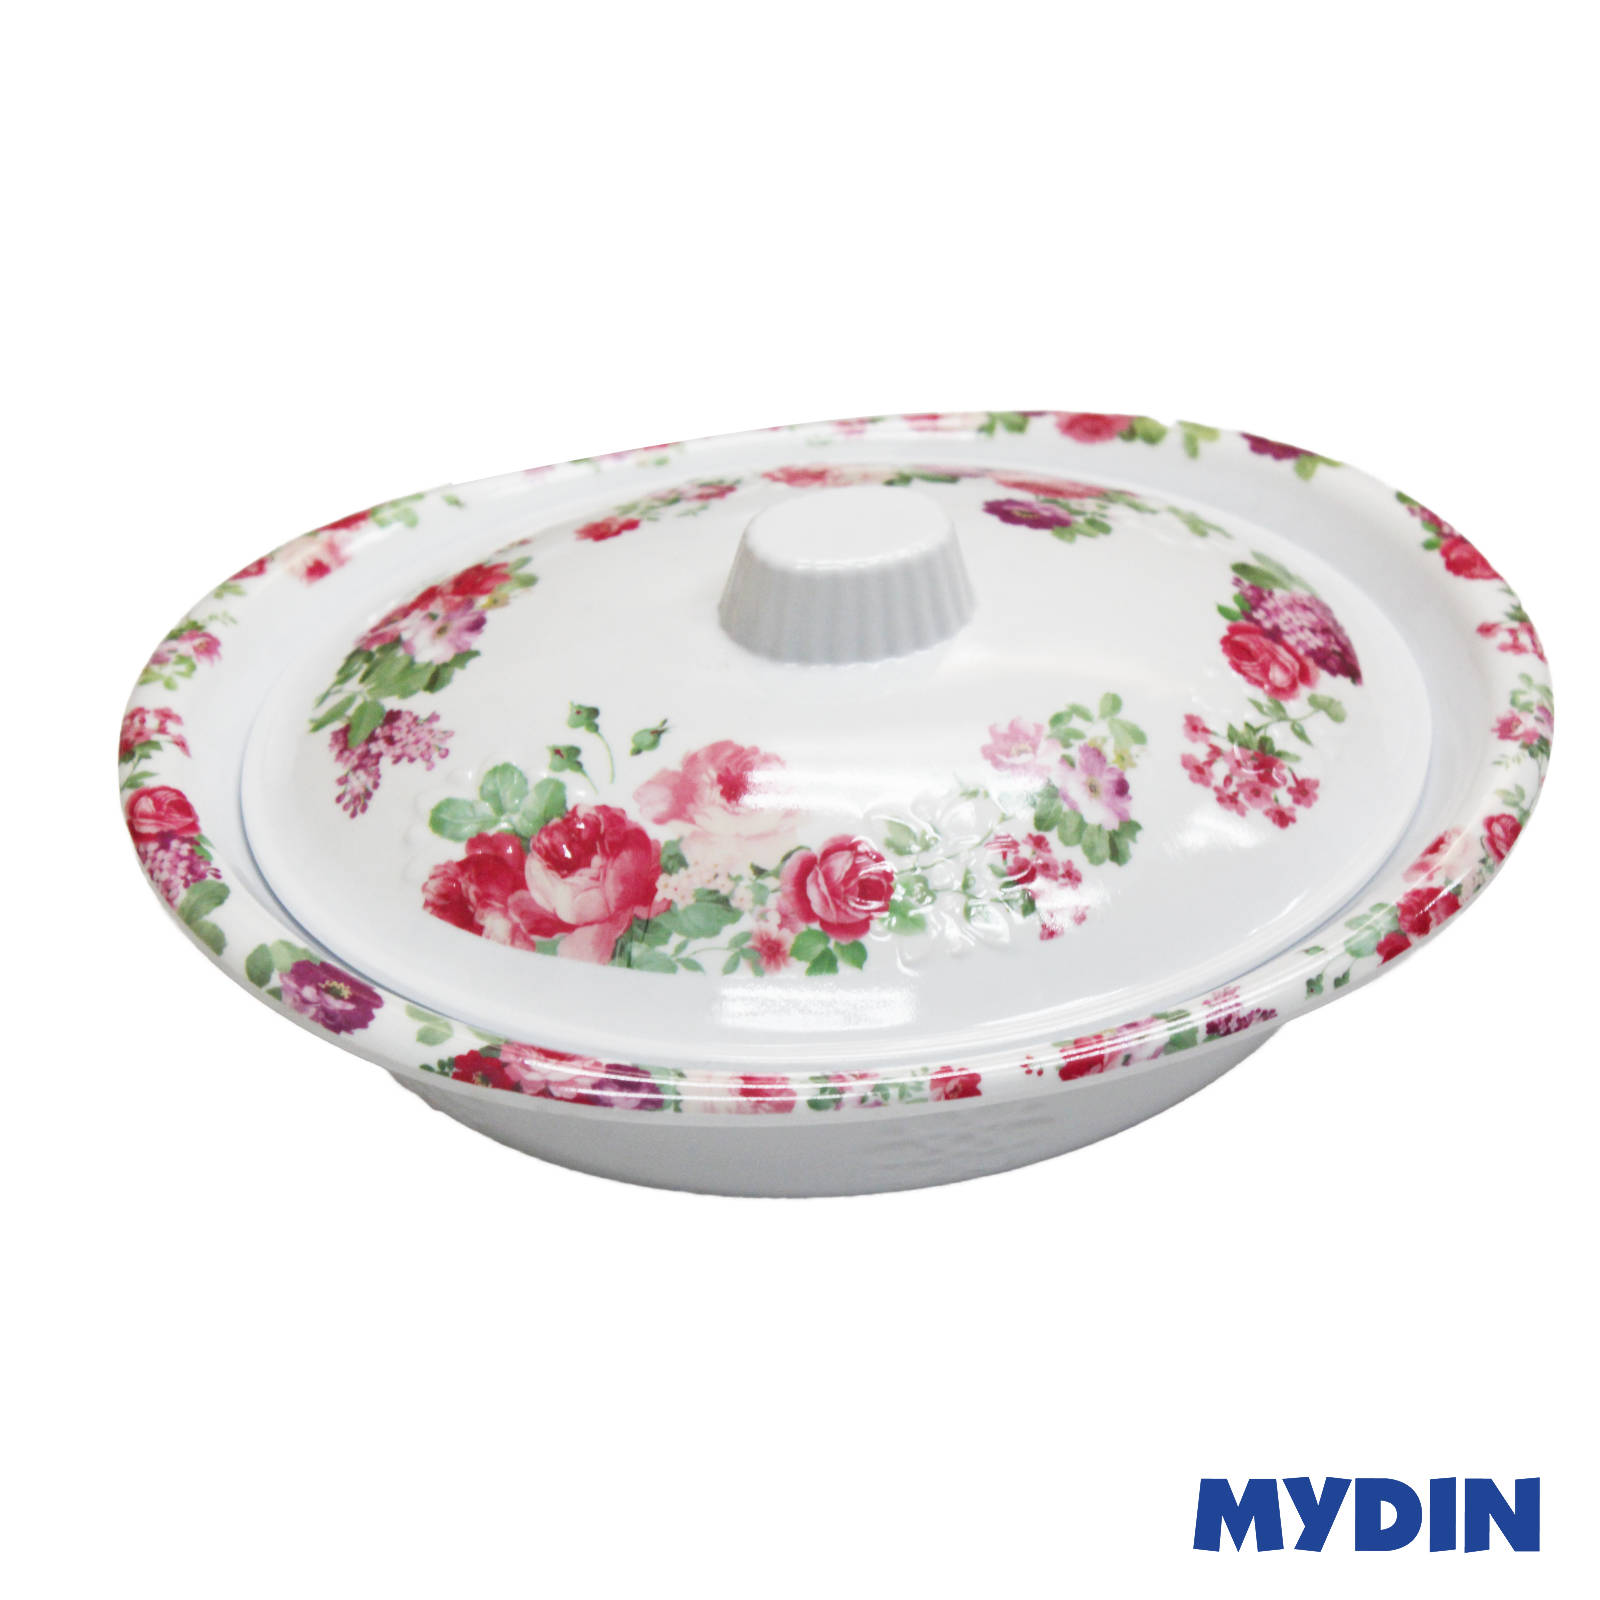 My Home Melamine Tureen Oval (11'') FWR CW-TU-11